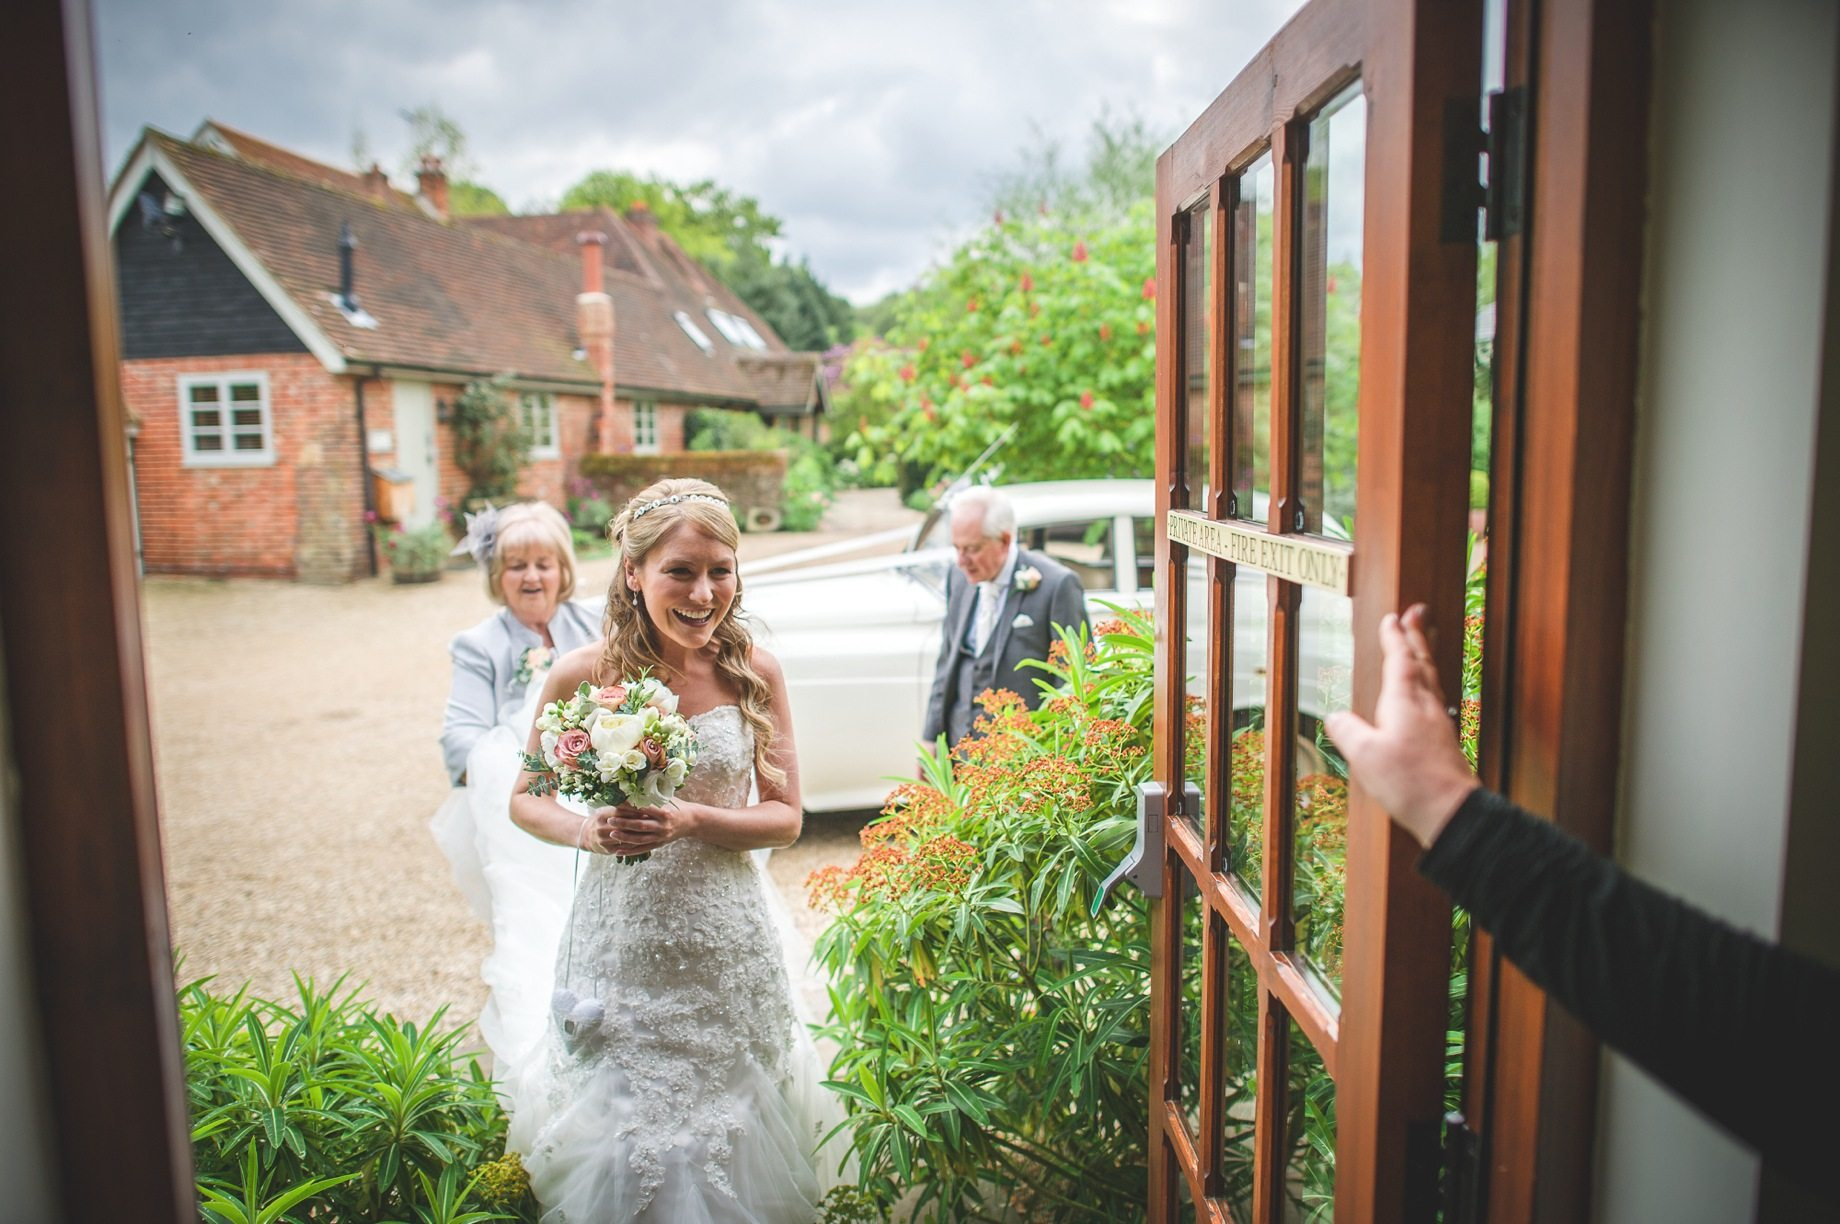 52Best Wedding Photography Guy Collier